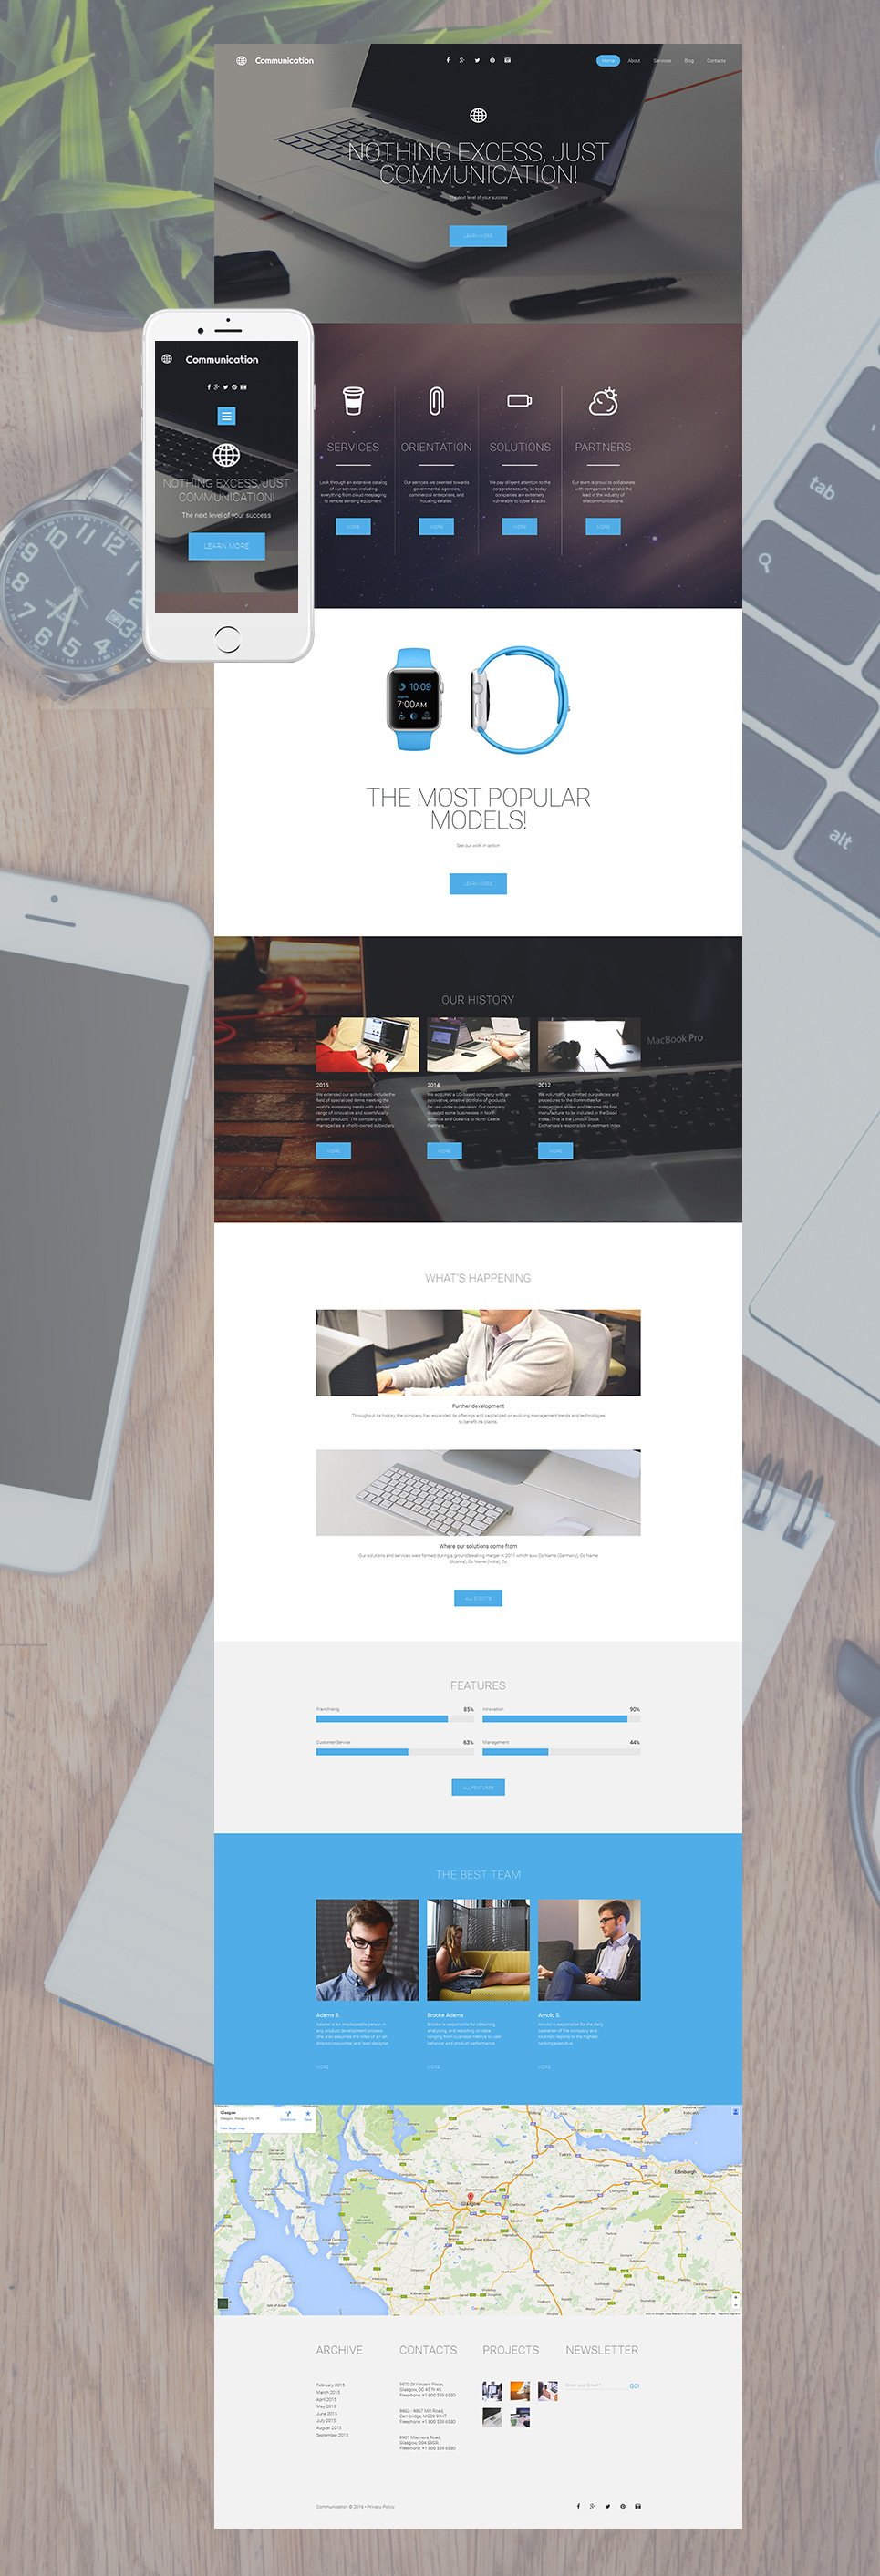 Responsive web theme for business firms